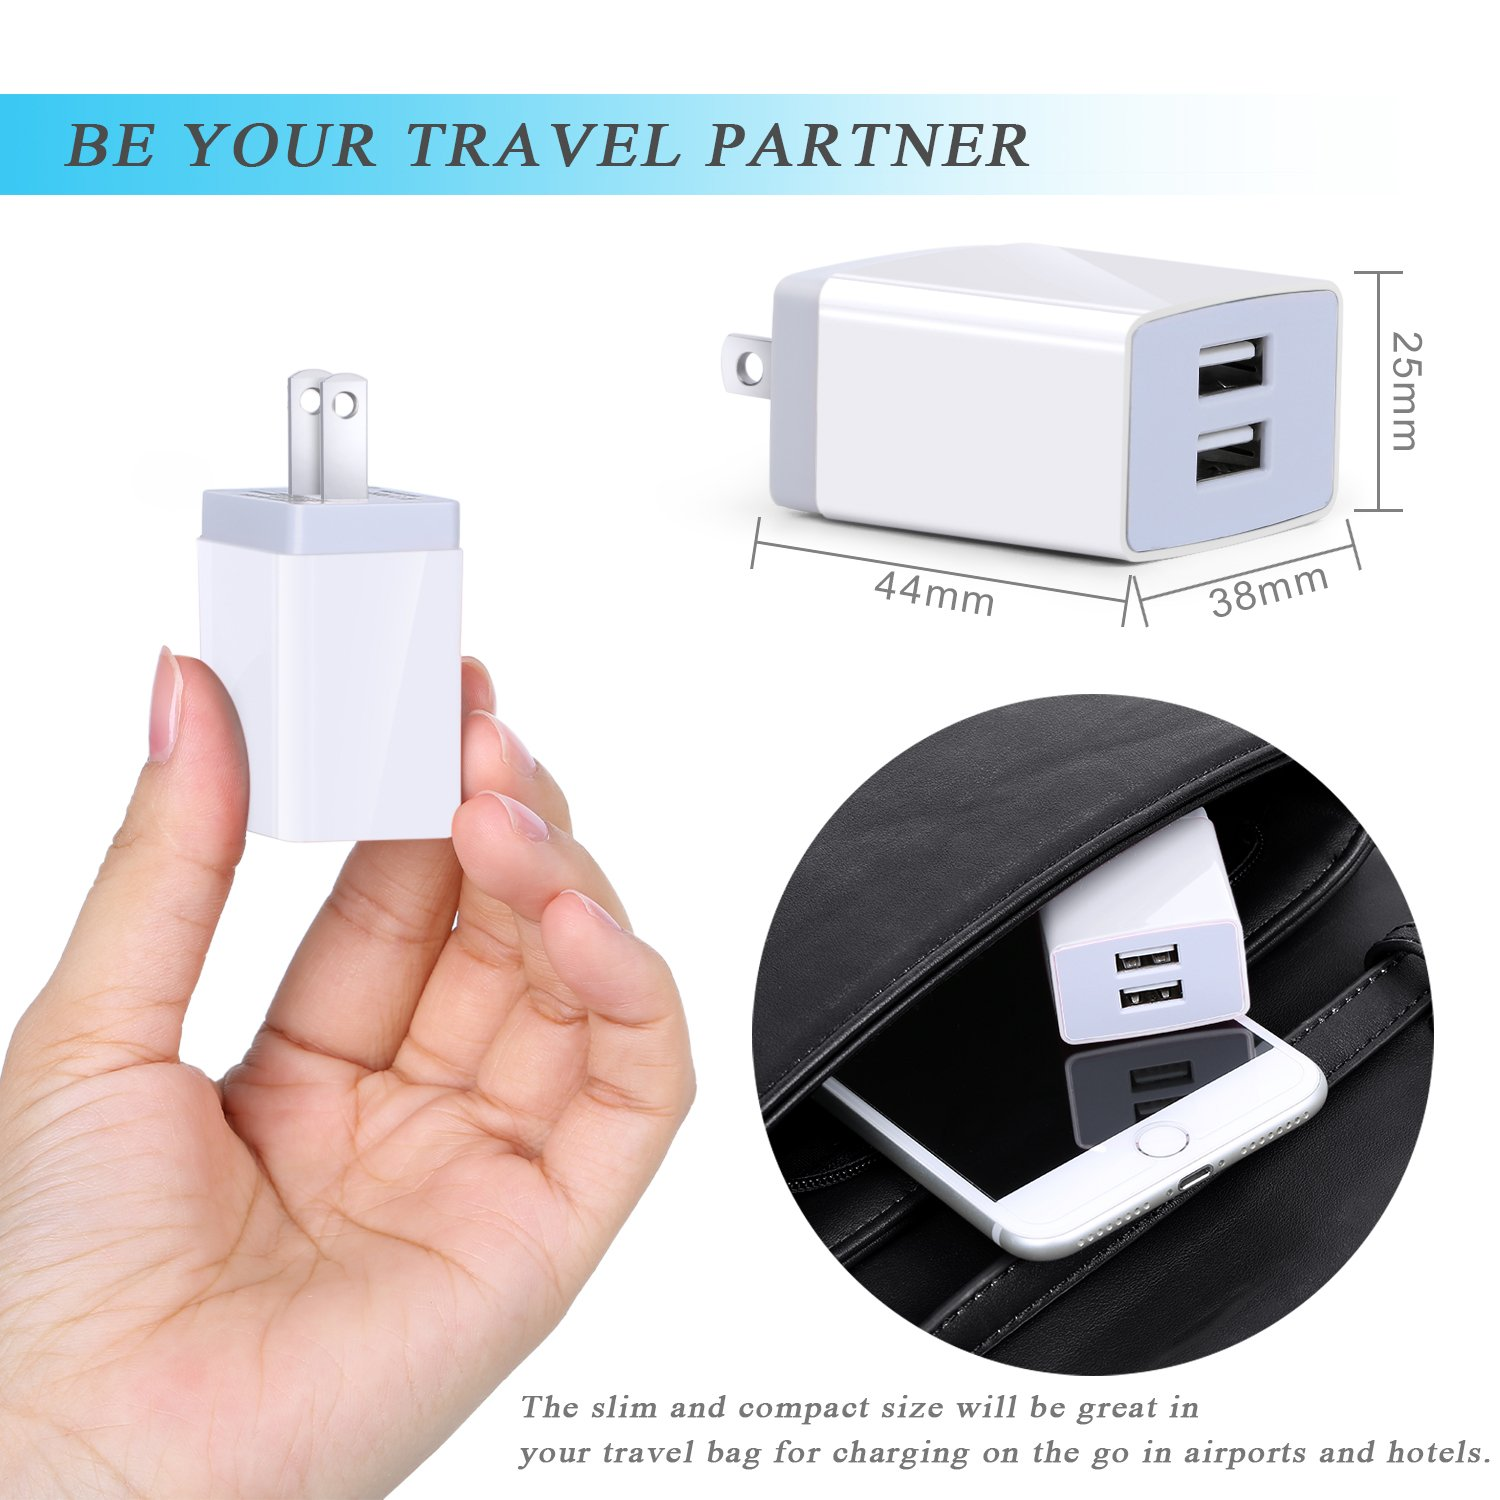 Eversame 2-Port 3.1A Travel USB Wall Charger Compatible for Galaxy S7/S6/S4, Note 4(3-Pack, White)